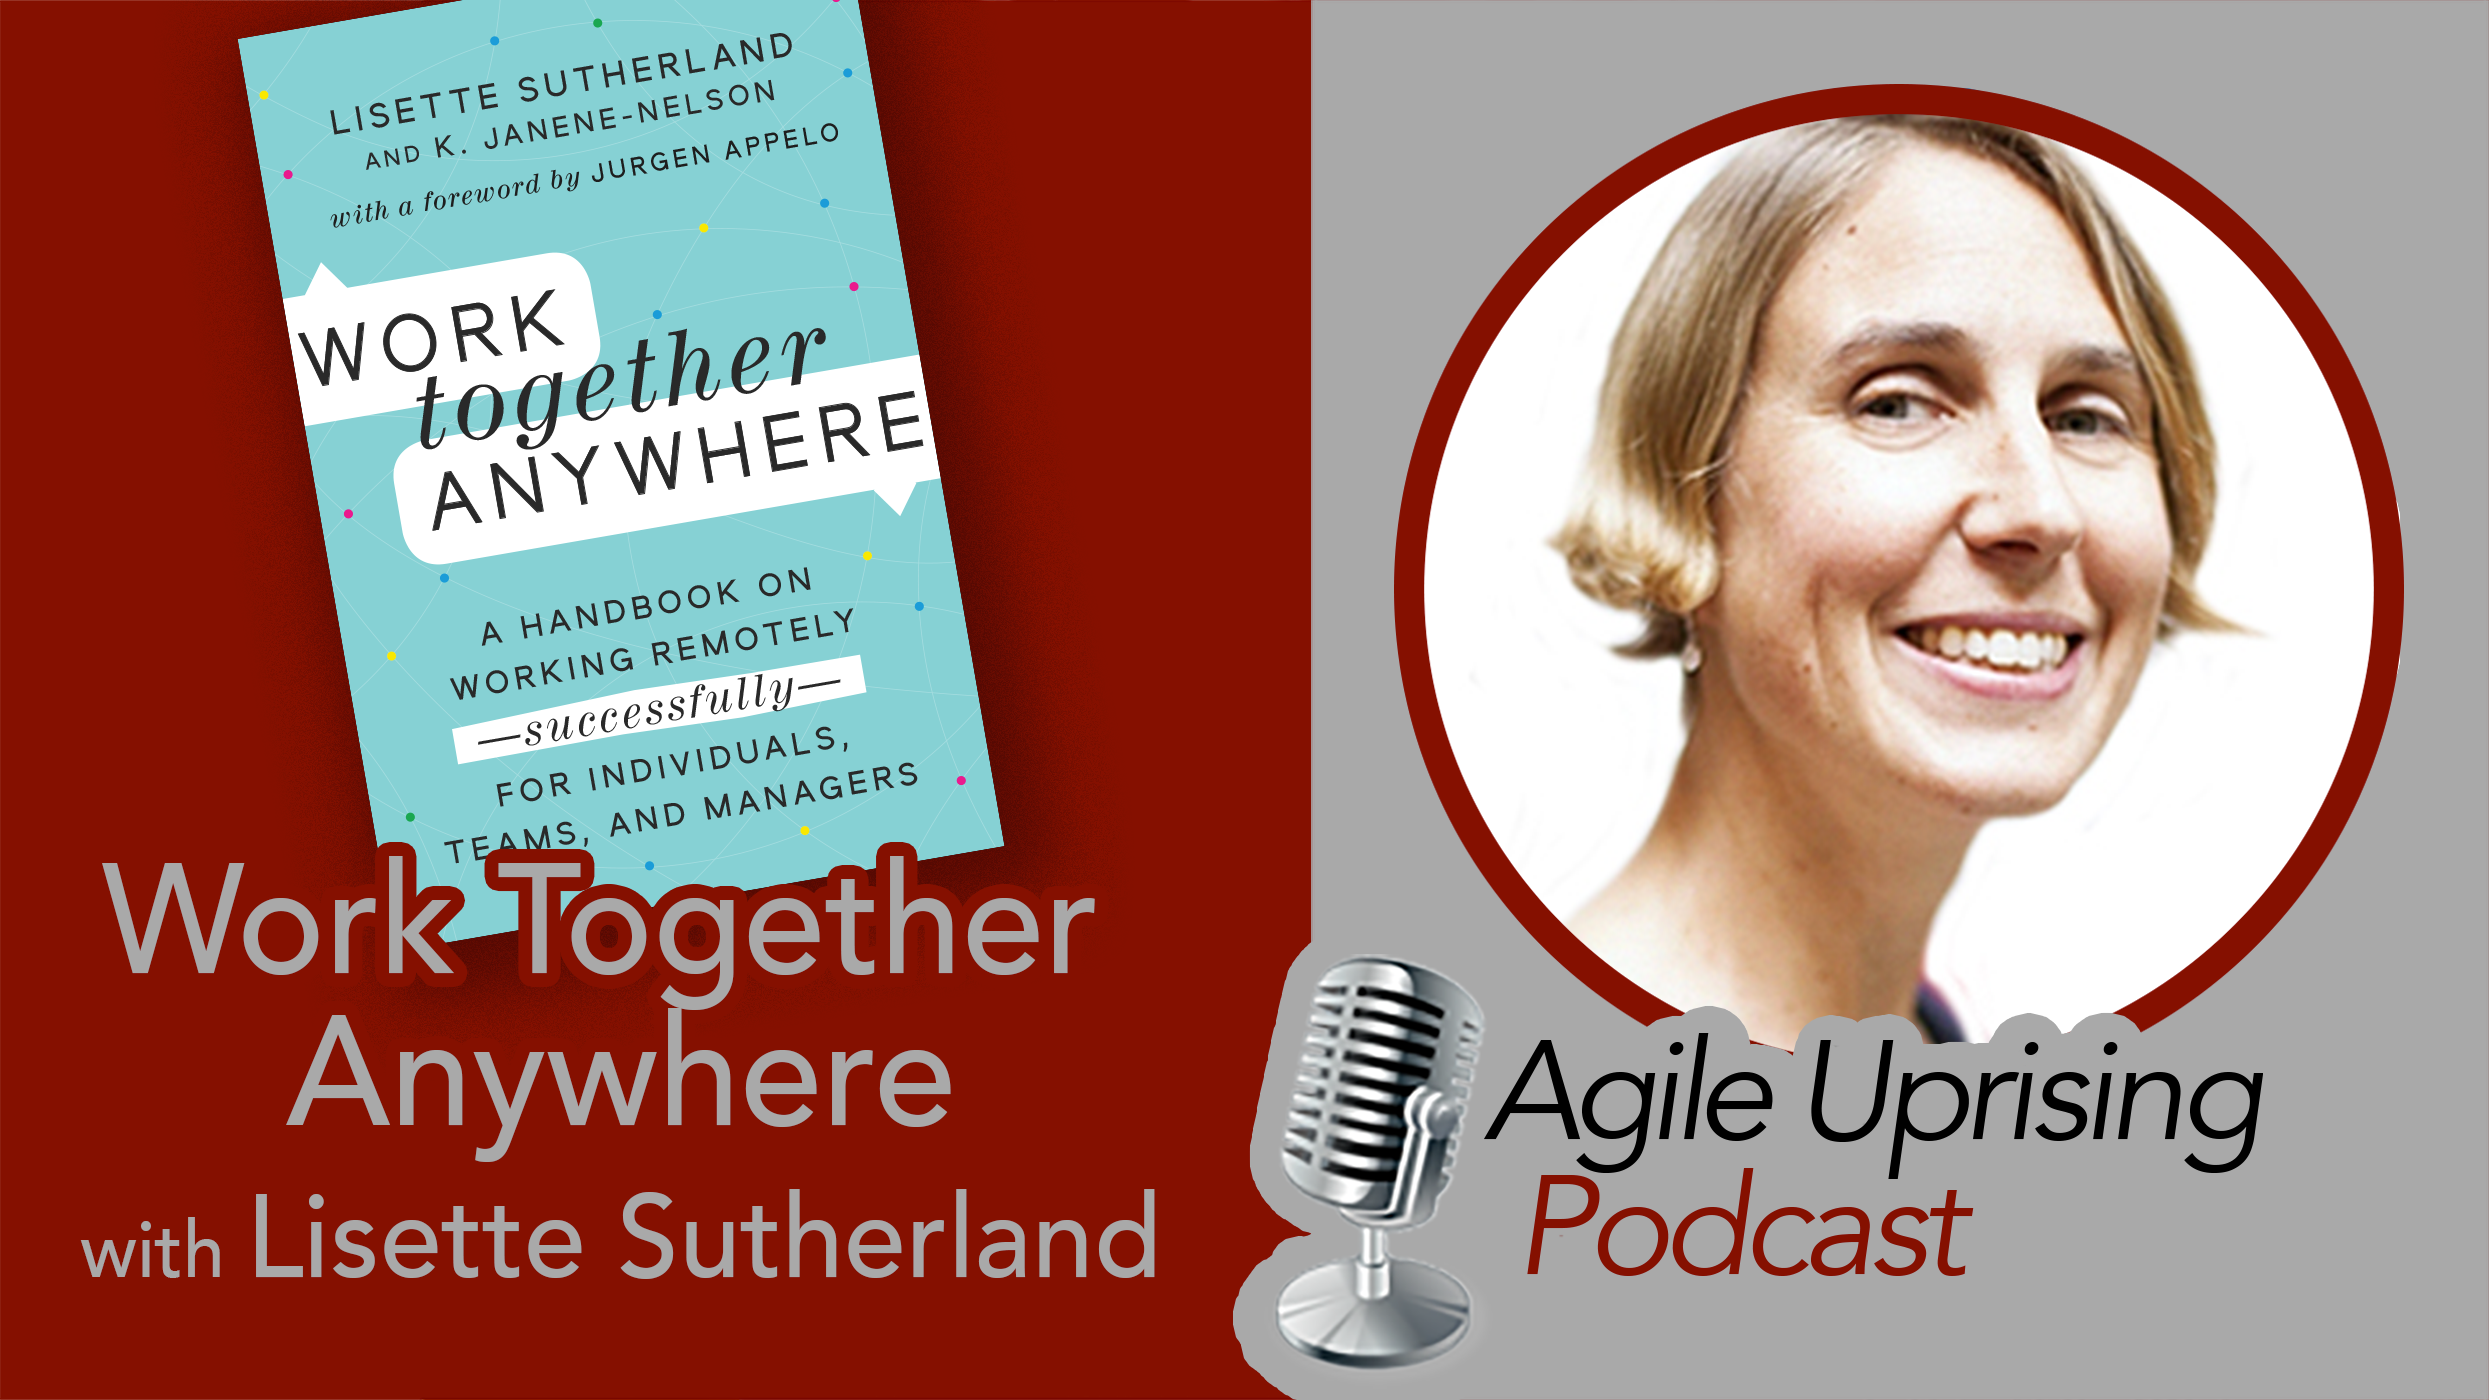 Work Together Anywhere with Lisette Sutherland